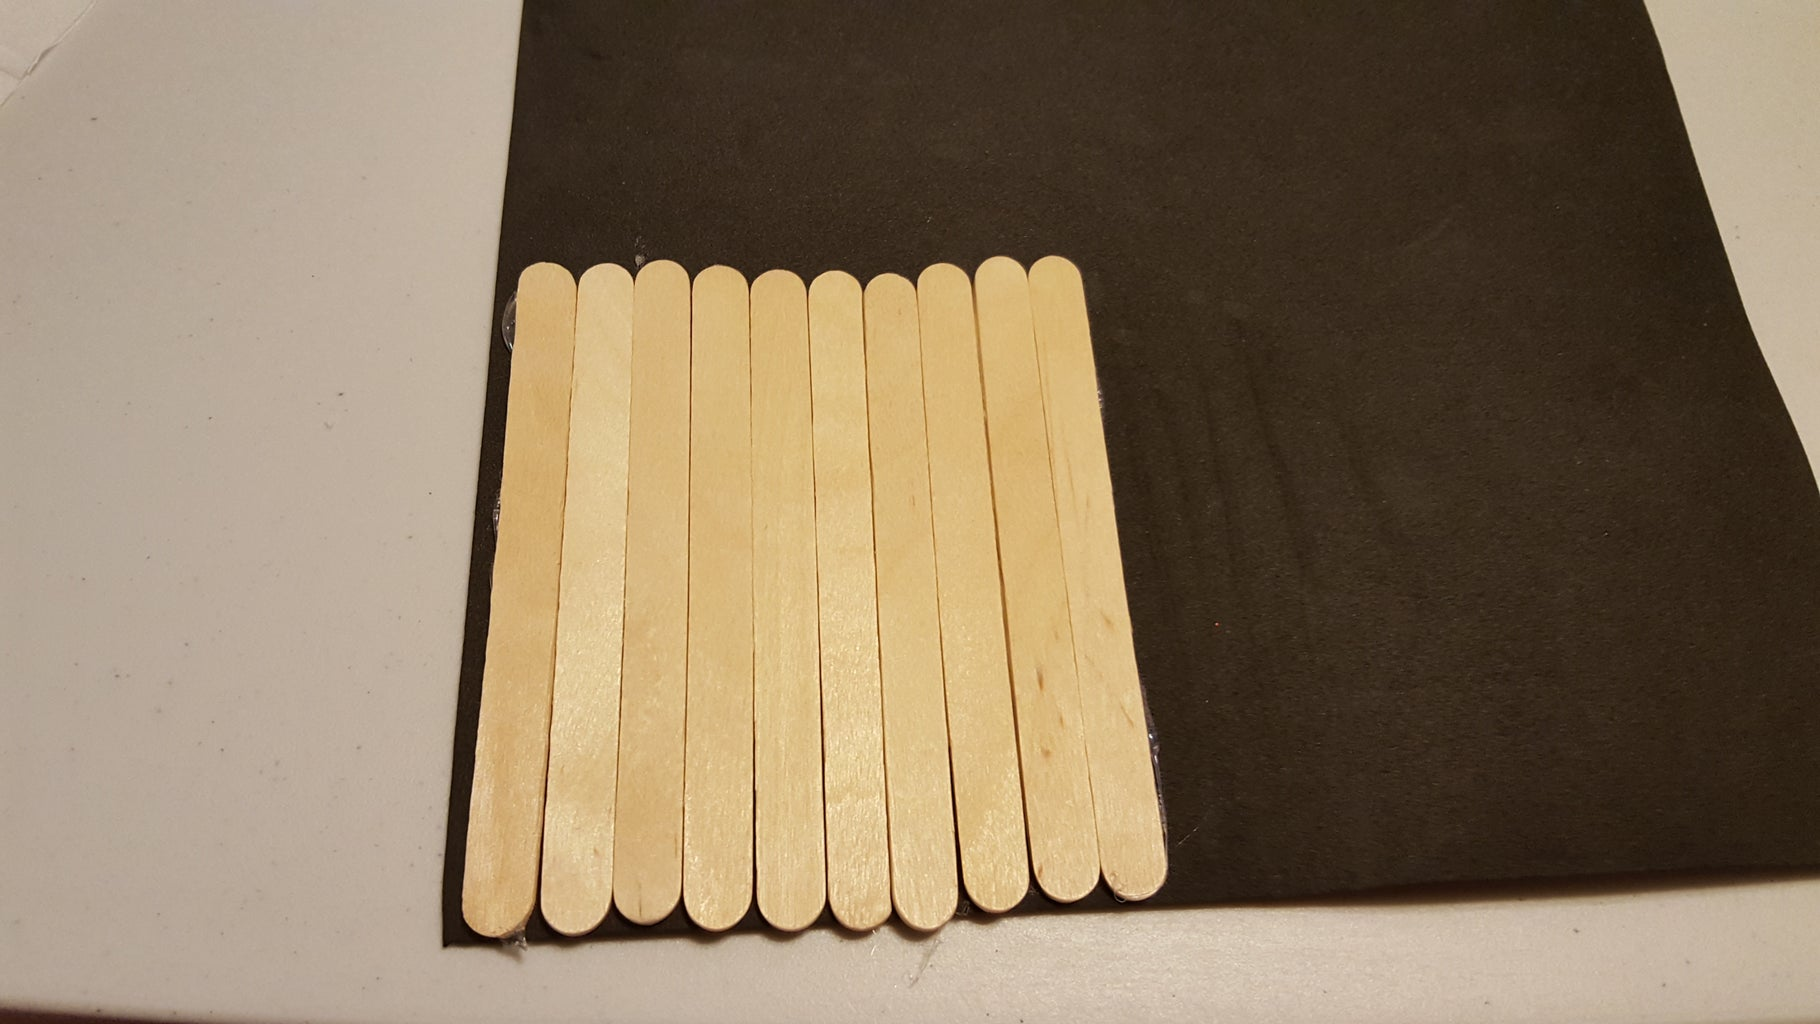 Repeat Steps 4 and 5 Until You've Glued Ten Popsicle Sticks to the Foam Sheet